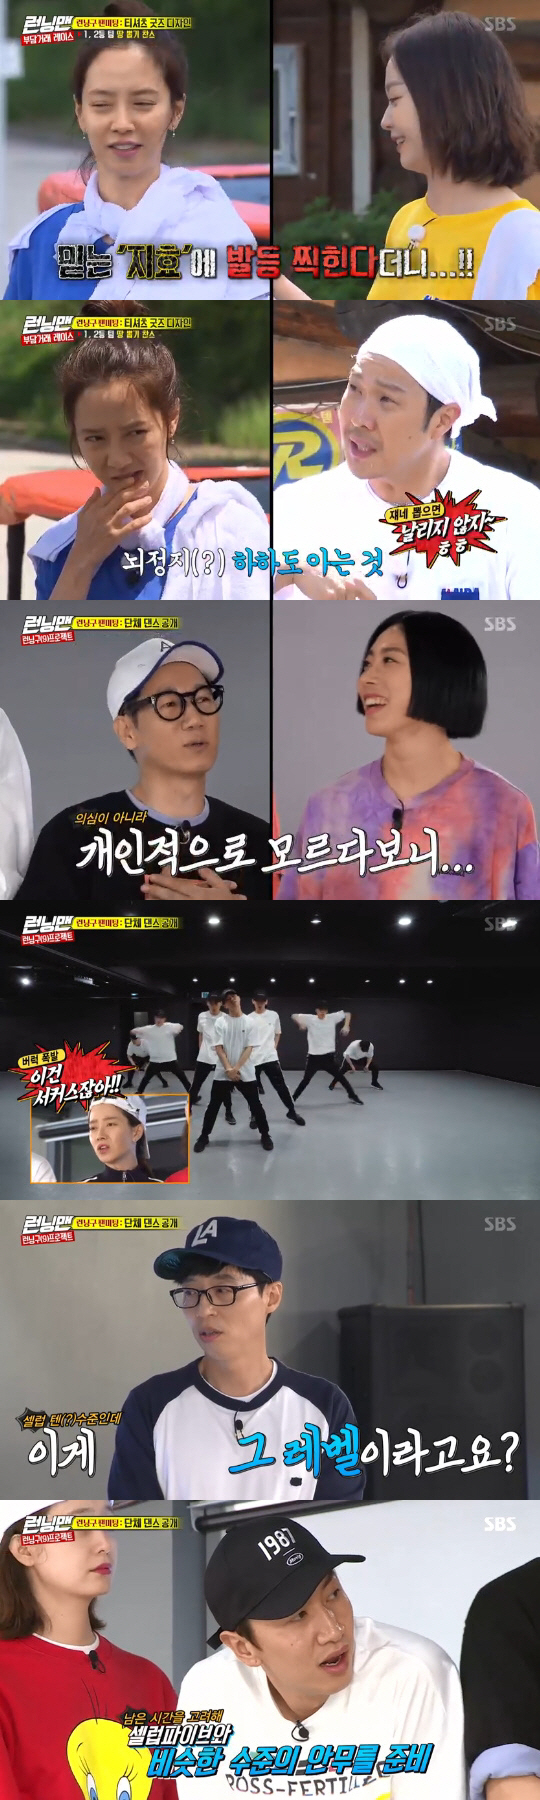 <p>2 days afternoon broadcast of SBS Running Manin the running of a T-shirt design to determine the run tool Project 3 - Tan- good size Raceas it unfolded.</p><p>Running Manin this summer to be held Love Without Love (Live at Summer Vacation/08 come to the fans for presents Running Man Good Days running T-shirt 3 ceiling anyway? Running T-shirtsdesign this day good size Race winner of the design as is.</p><p>Members of the authentic Race before each of the winning productions would like to T-shirt design directly painted. Amount more like himself, except for all the members of the toad made a simple(?) Design more than anything. Stone is, as no one is alone, but Sherlock Holmes became a design with members of the blind blame received. Yoo Jae Suk is the Avengersand the Palace of artof the collaboration that emphasizes the design was, and Kim Jong-kook is a jigsaw catching a tigeris a topic with outstanding painting skills and was proud. Or this tour the number of members of his staff, put that painted a picture, and a small members texture or painted Design, Your said. One of the members handling that anger in to the picture again and to all members as a point representation for a laugh, I found myself in. Only Song JI Hyo anyone Running Mans heroine can beis a brilliant idea containing design information by members received recognition.</p><p> This day, design the protagonist to the burden or Raceis a 2-in-1 as a team that progress in Race to land only to choose well if you can win that Race. The final R mother a lot of teams to win the Championship, and the winning team one final win along with the design rights to us. Enamored bracelet team two members of a group with a T-shirt of the back hip portion to place a face to sit on hips hardwood this is a totally humiliating punishment receiving.</p><p>One team will support the analysis with Kim Jong-kook, Yoo Jae Suk and Song JI Hyo, haha and sheep more comfortable, this light and place people on each team is given 6 in the land of gold 7 and Quang 2 freely deployed.</p><p>The gold bullion acquired and a meal ticket, it takes the first mission is the time limit of 100 seconds Trivia Challenge team trivia to meet other team members water bombs you have to avoid the thing. Different teams and different seats and Kim Jong-kook is a win, regardless of standing as a complete(?)To Koch. Especially silly because of water bombs to the right Kim Jong-kook is this mould is Meet have no idea there. I also saida few days molars tight, biting the team members and the support seat with a water bomb for a bomb was.</p><p>In the finals that Yoo Jae Suk - Song JI Hyo and HaHa - two more as the team met. Yoo Jae Suk - Song JI Hyo, Lee Kwang-Soo - ago loss people to take help of won the championship. However, the two winning benefits land pulled in ahead of the appointment will be with your car without the options - the min to ship your gold until one has obtained.</p><p> Meanwhile, the members of the mission are briefly Devote and Love Without Love (Live at Summer Vacation/08 in the showcase group dance ready for the world-choreographer Leah raised and met. Members think more complex choreography in really did not. This in the Liao scheme is a celebrity five level fit in there. They feel prepared tobe the action as techno healthy inside put. Then if you can,he explained. But members this was a miracle,said full of worry look.</p>